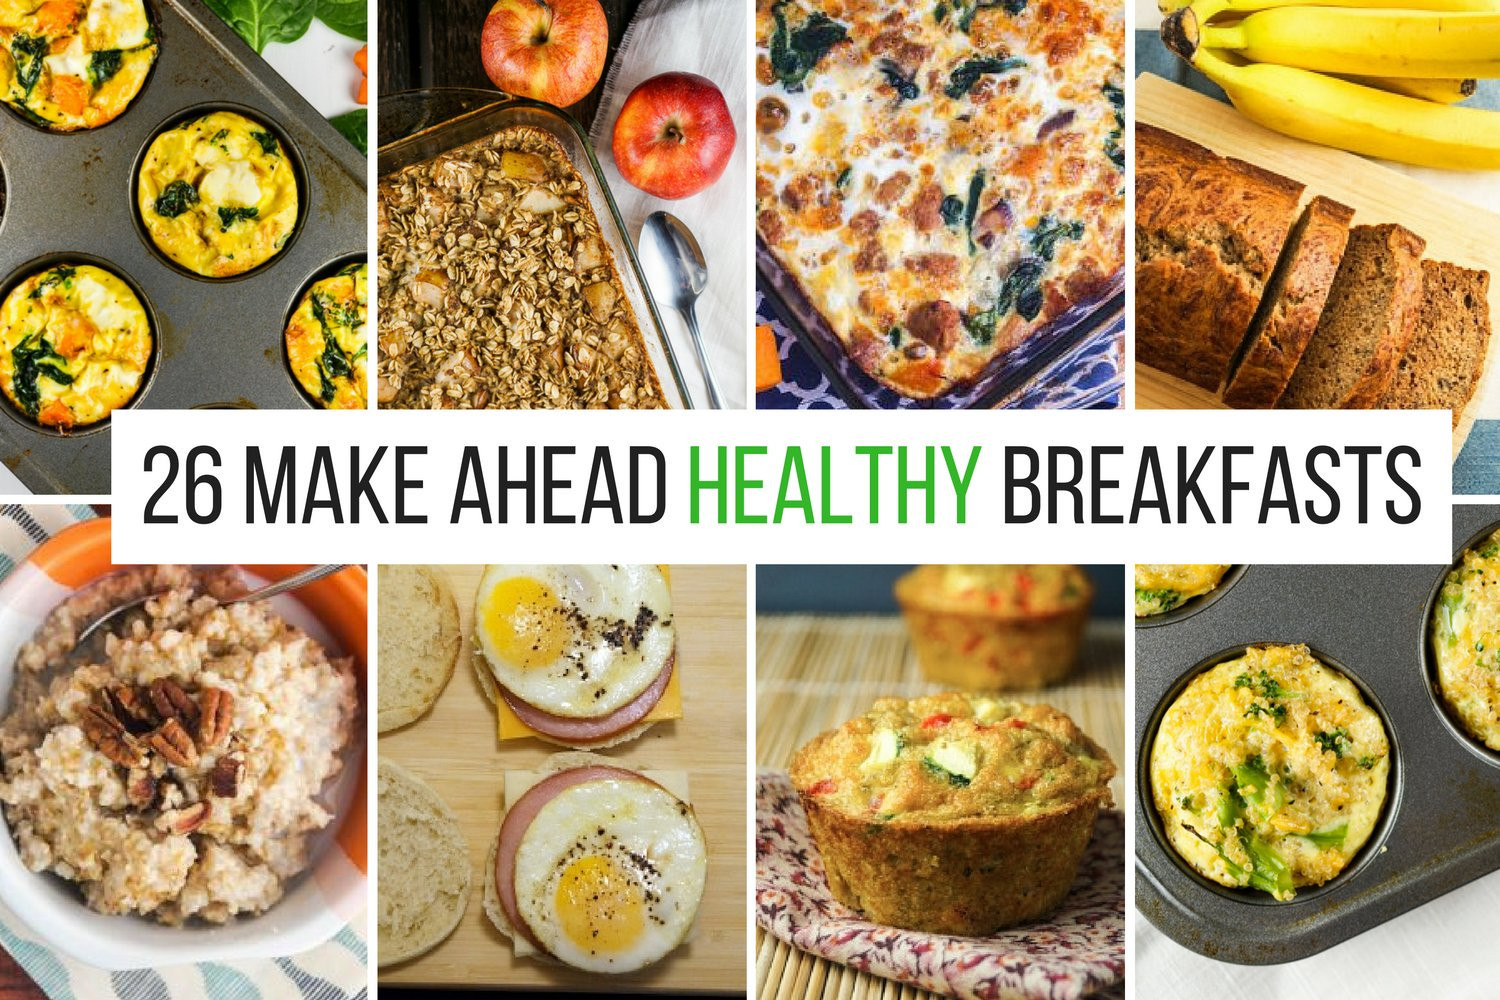 Healthy Make Ahead Breakfast Recipes  26 Healthy Make Ahead Breakfasts For Busy Mornings Great